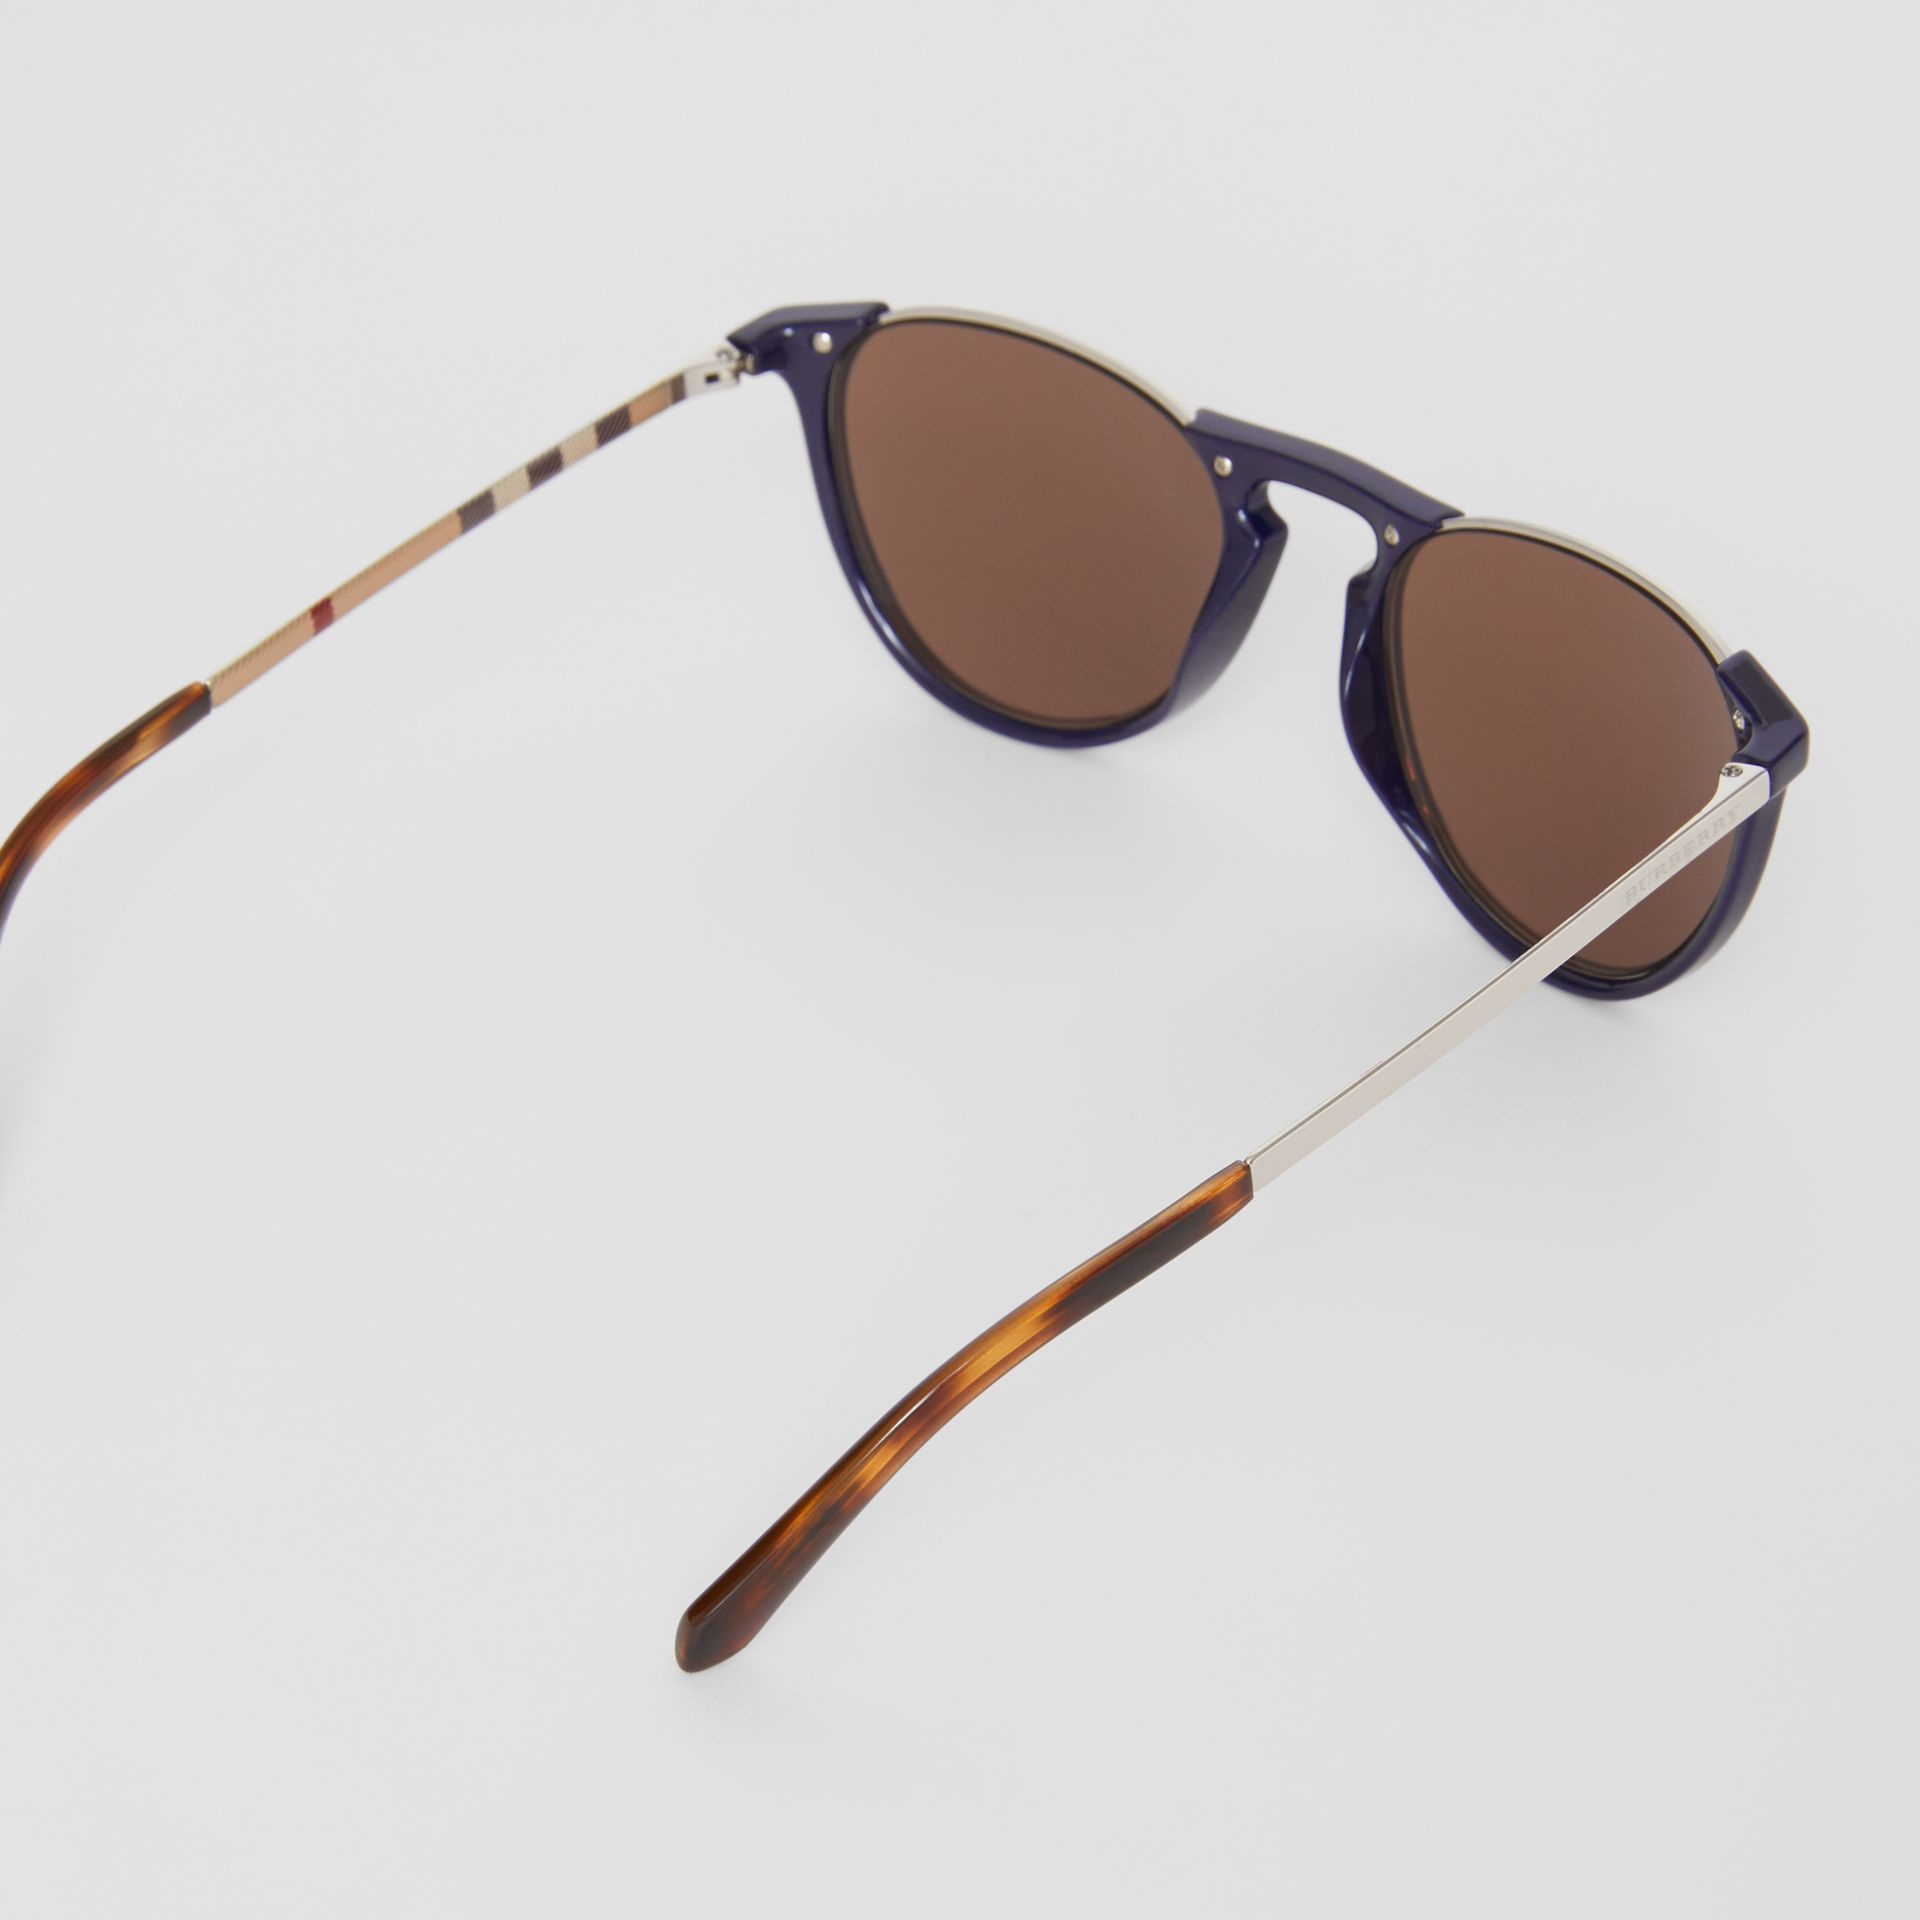 Keyhole Pilot Round Frame Sunglasses in Blue - Men | Burberry United Kingdom - gallery image 3